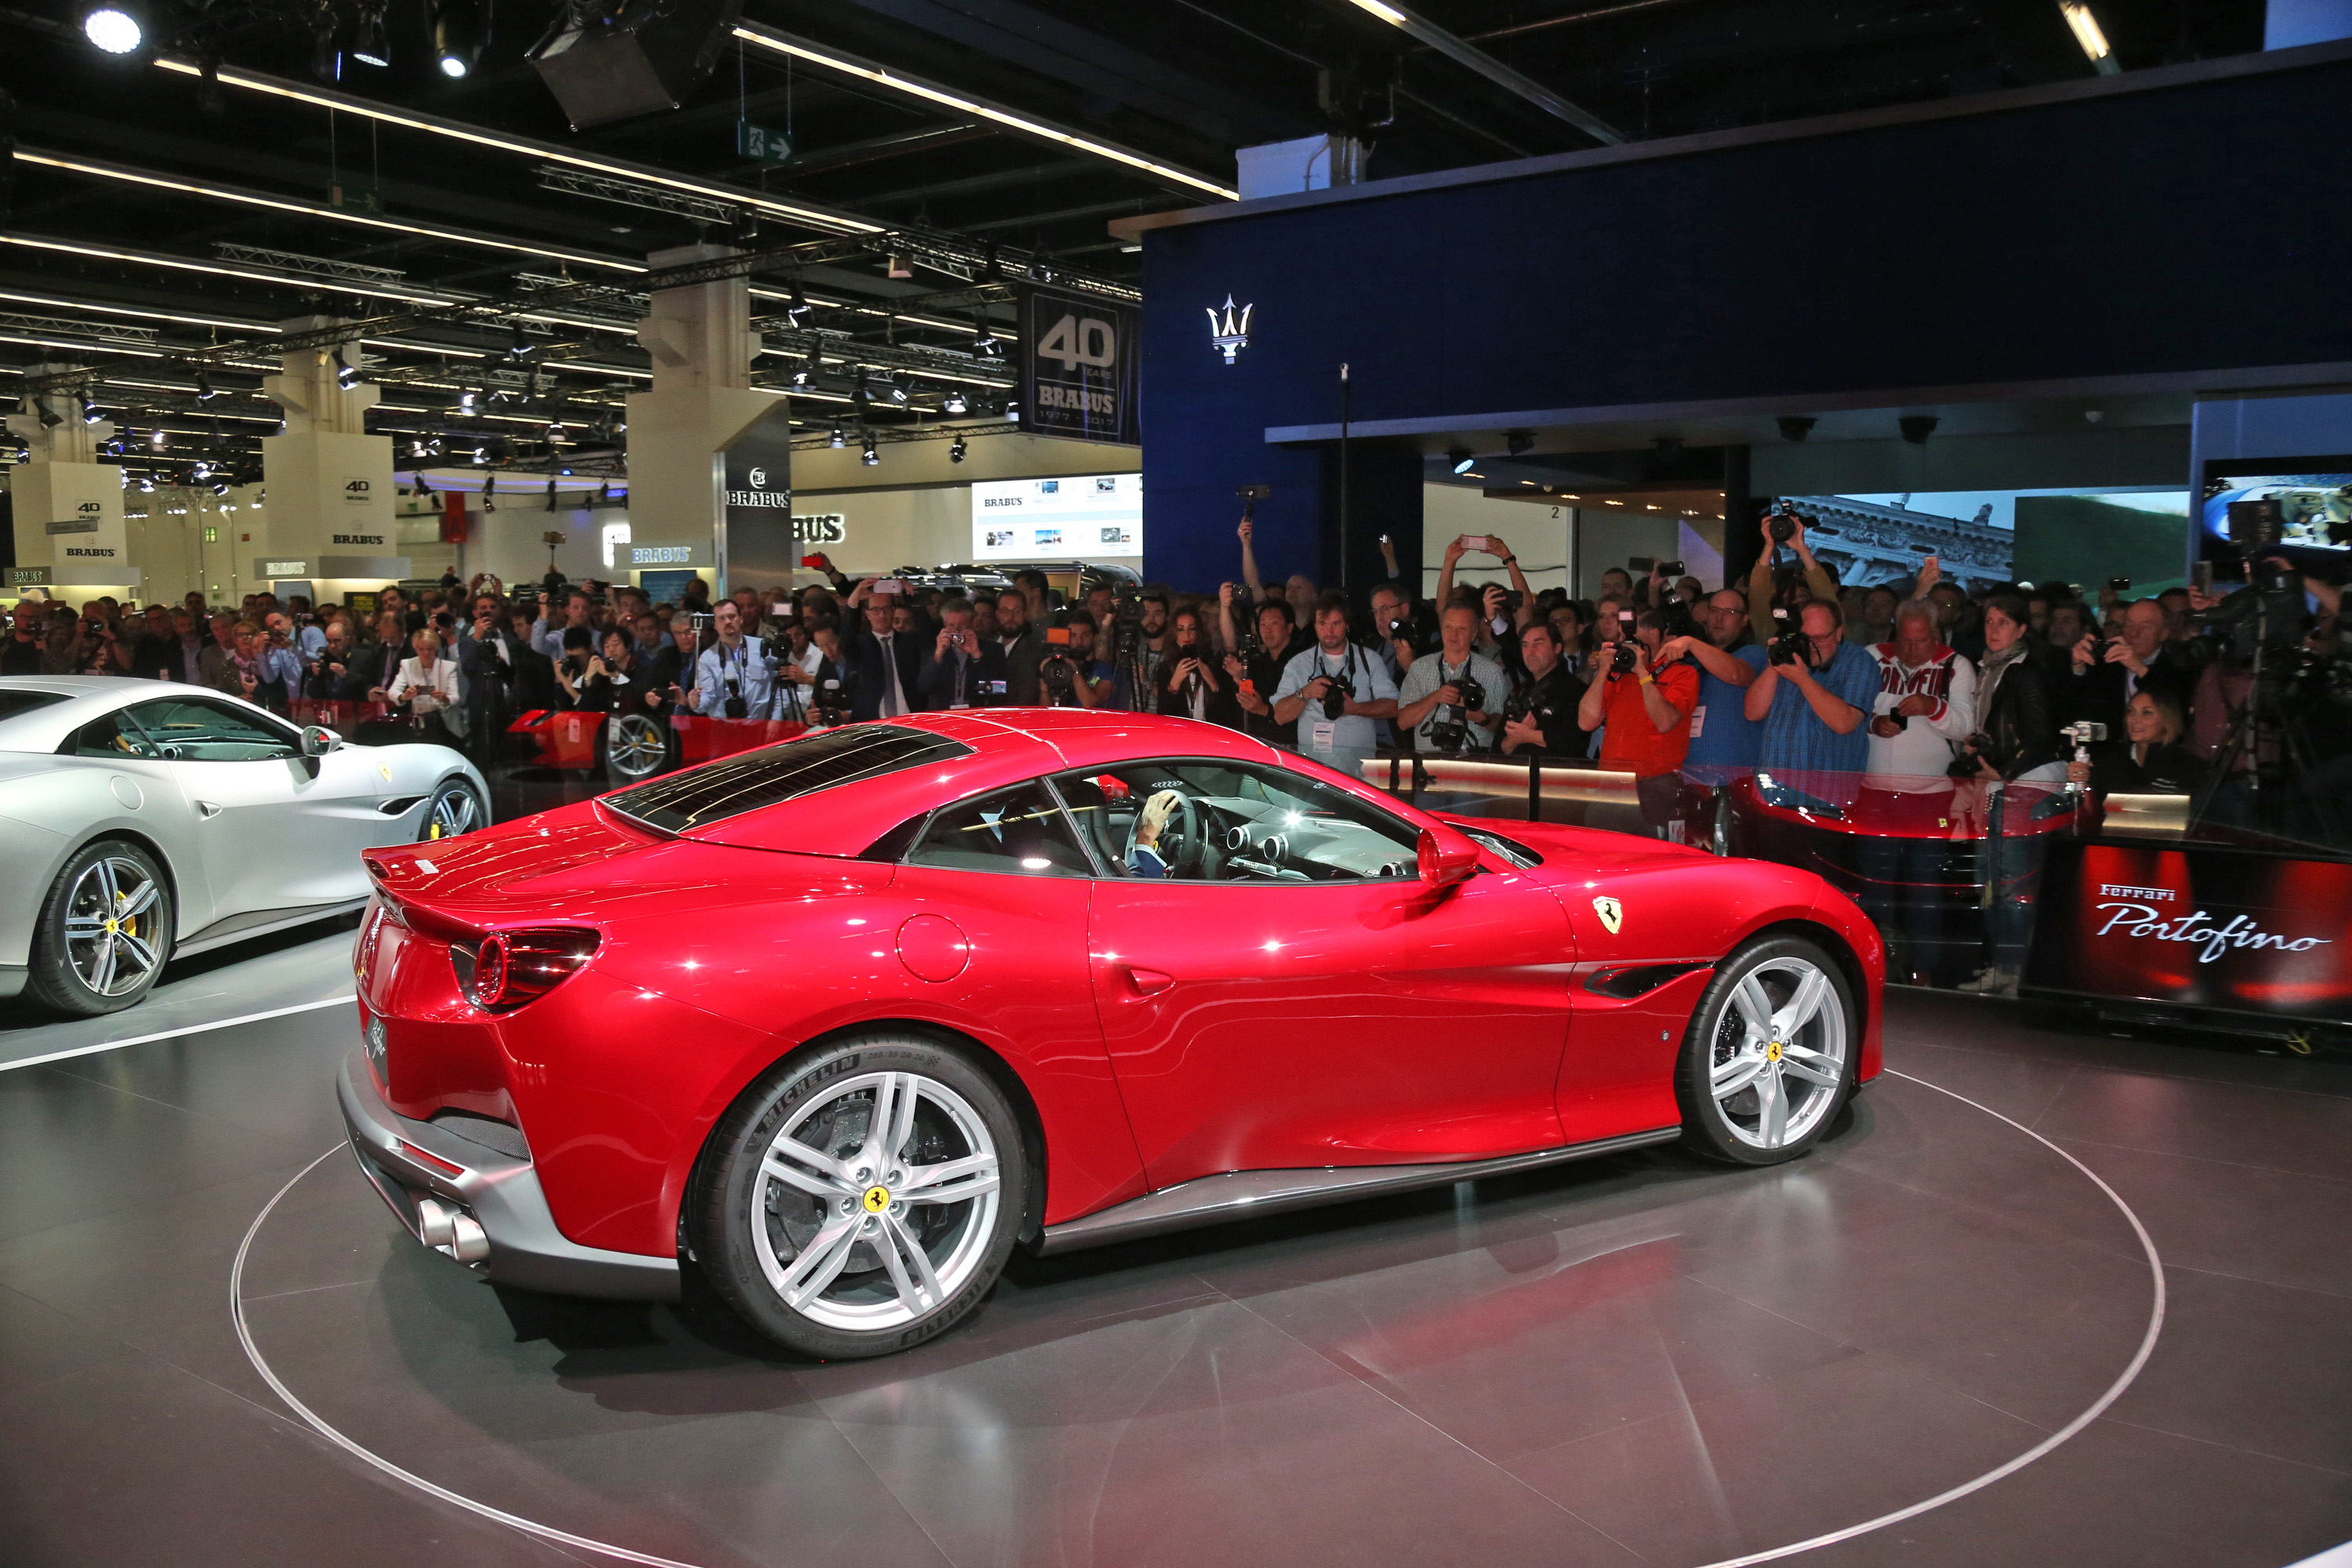 spec stradale does cost how sale for on ferrari it jamesedition challenge cars gcc much